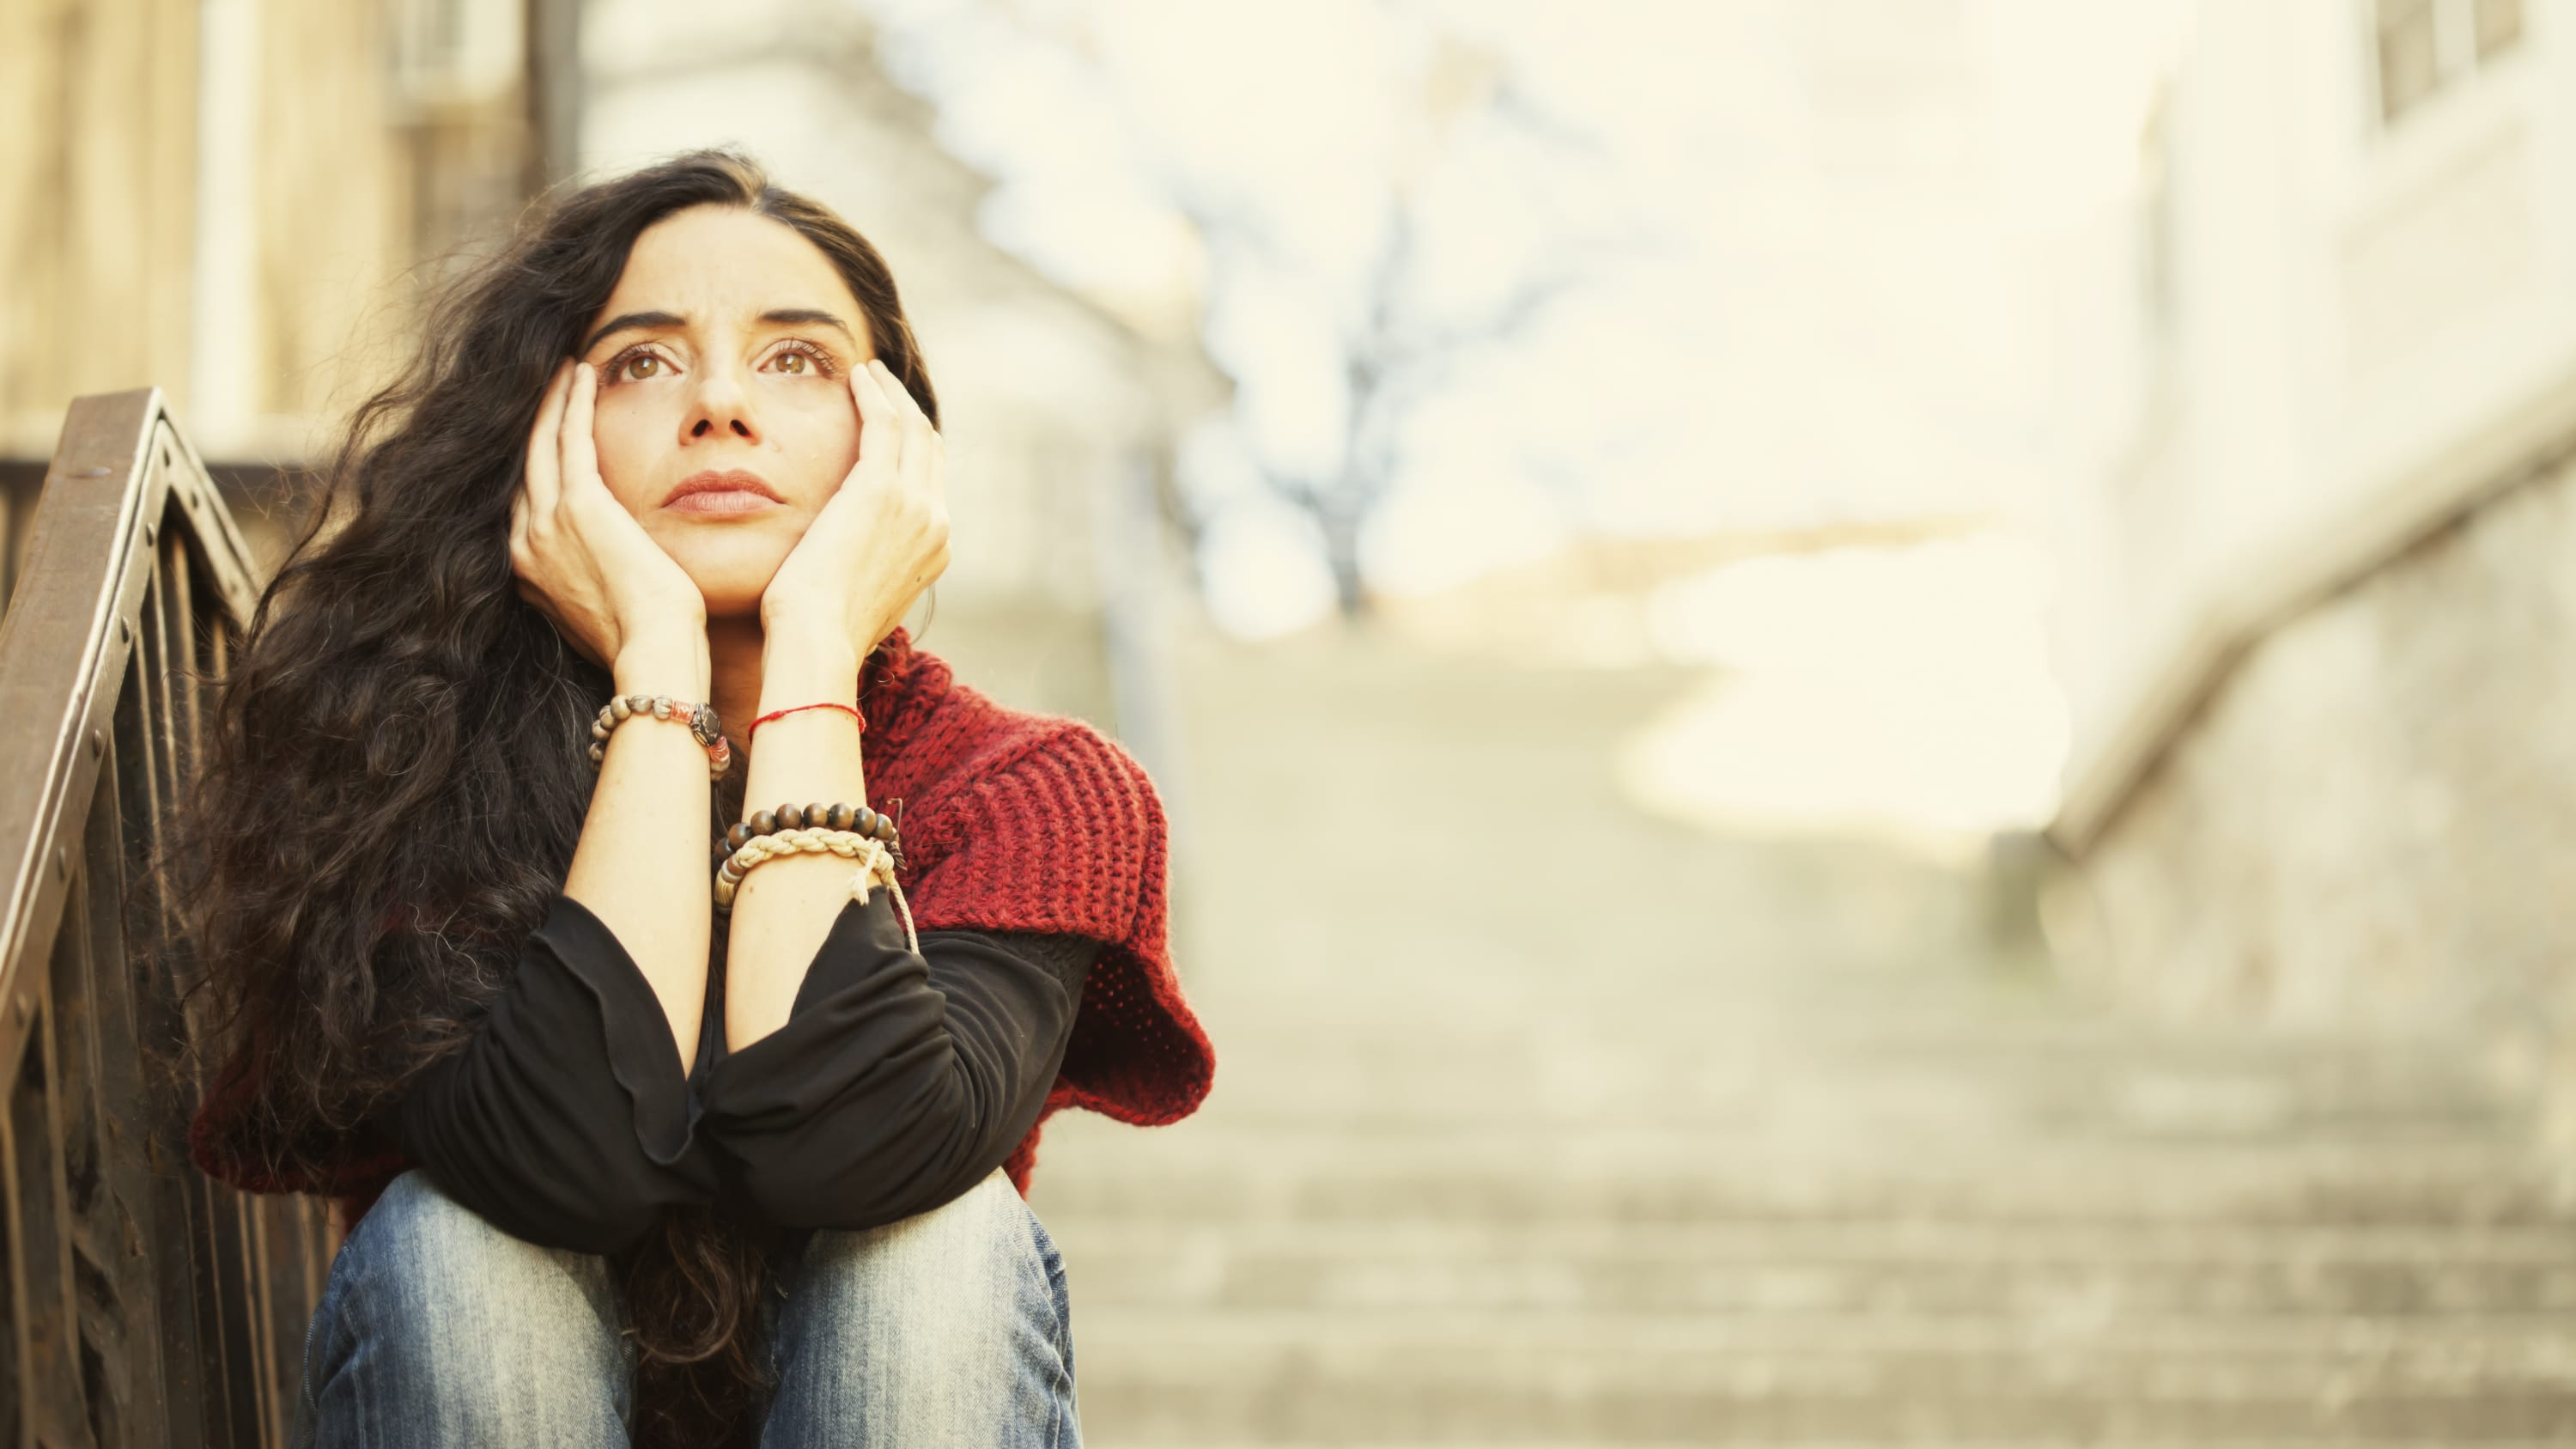 A woman sits on concrete steps, thinking, possibly about pelvic organ prolapse